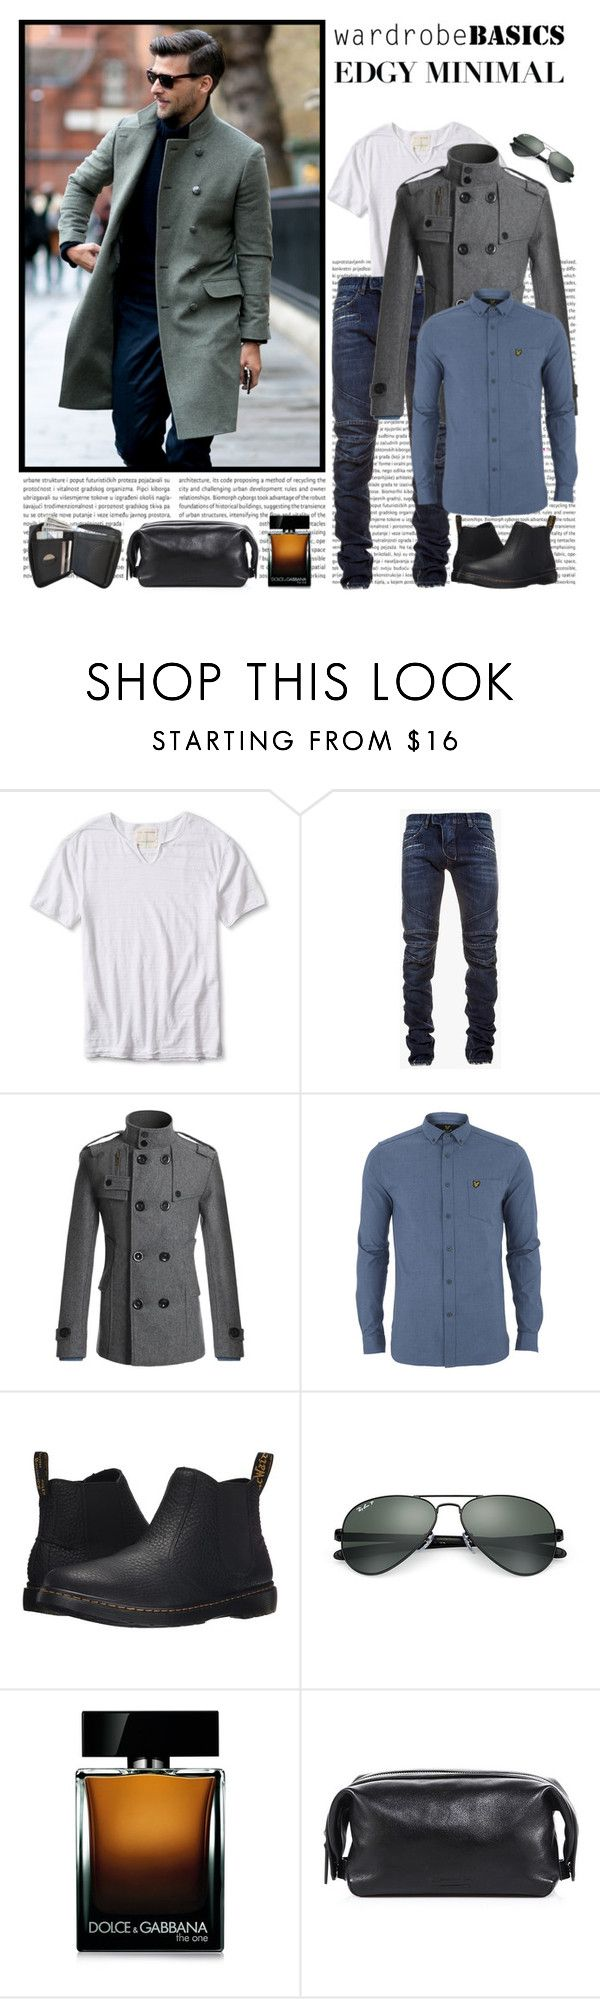 Men's Basics by leegal57 on Polyvore featuring Lyle & Scott, Banana Republic, Balmain, Doublju, Dr. Martens, Ray-Ban, Dolce&Gabbana, Uri Minkoff, mens and men